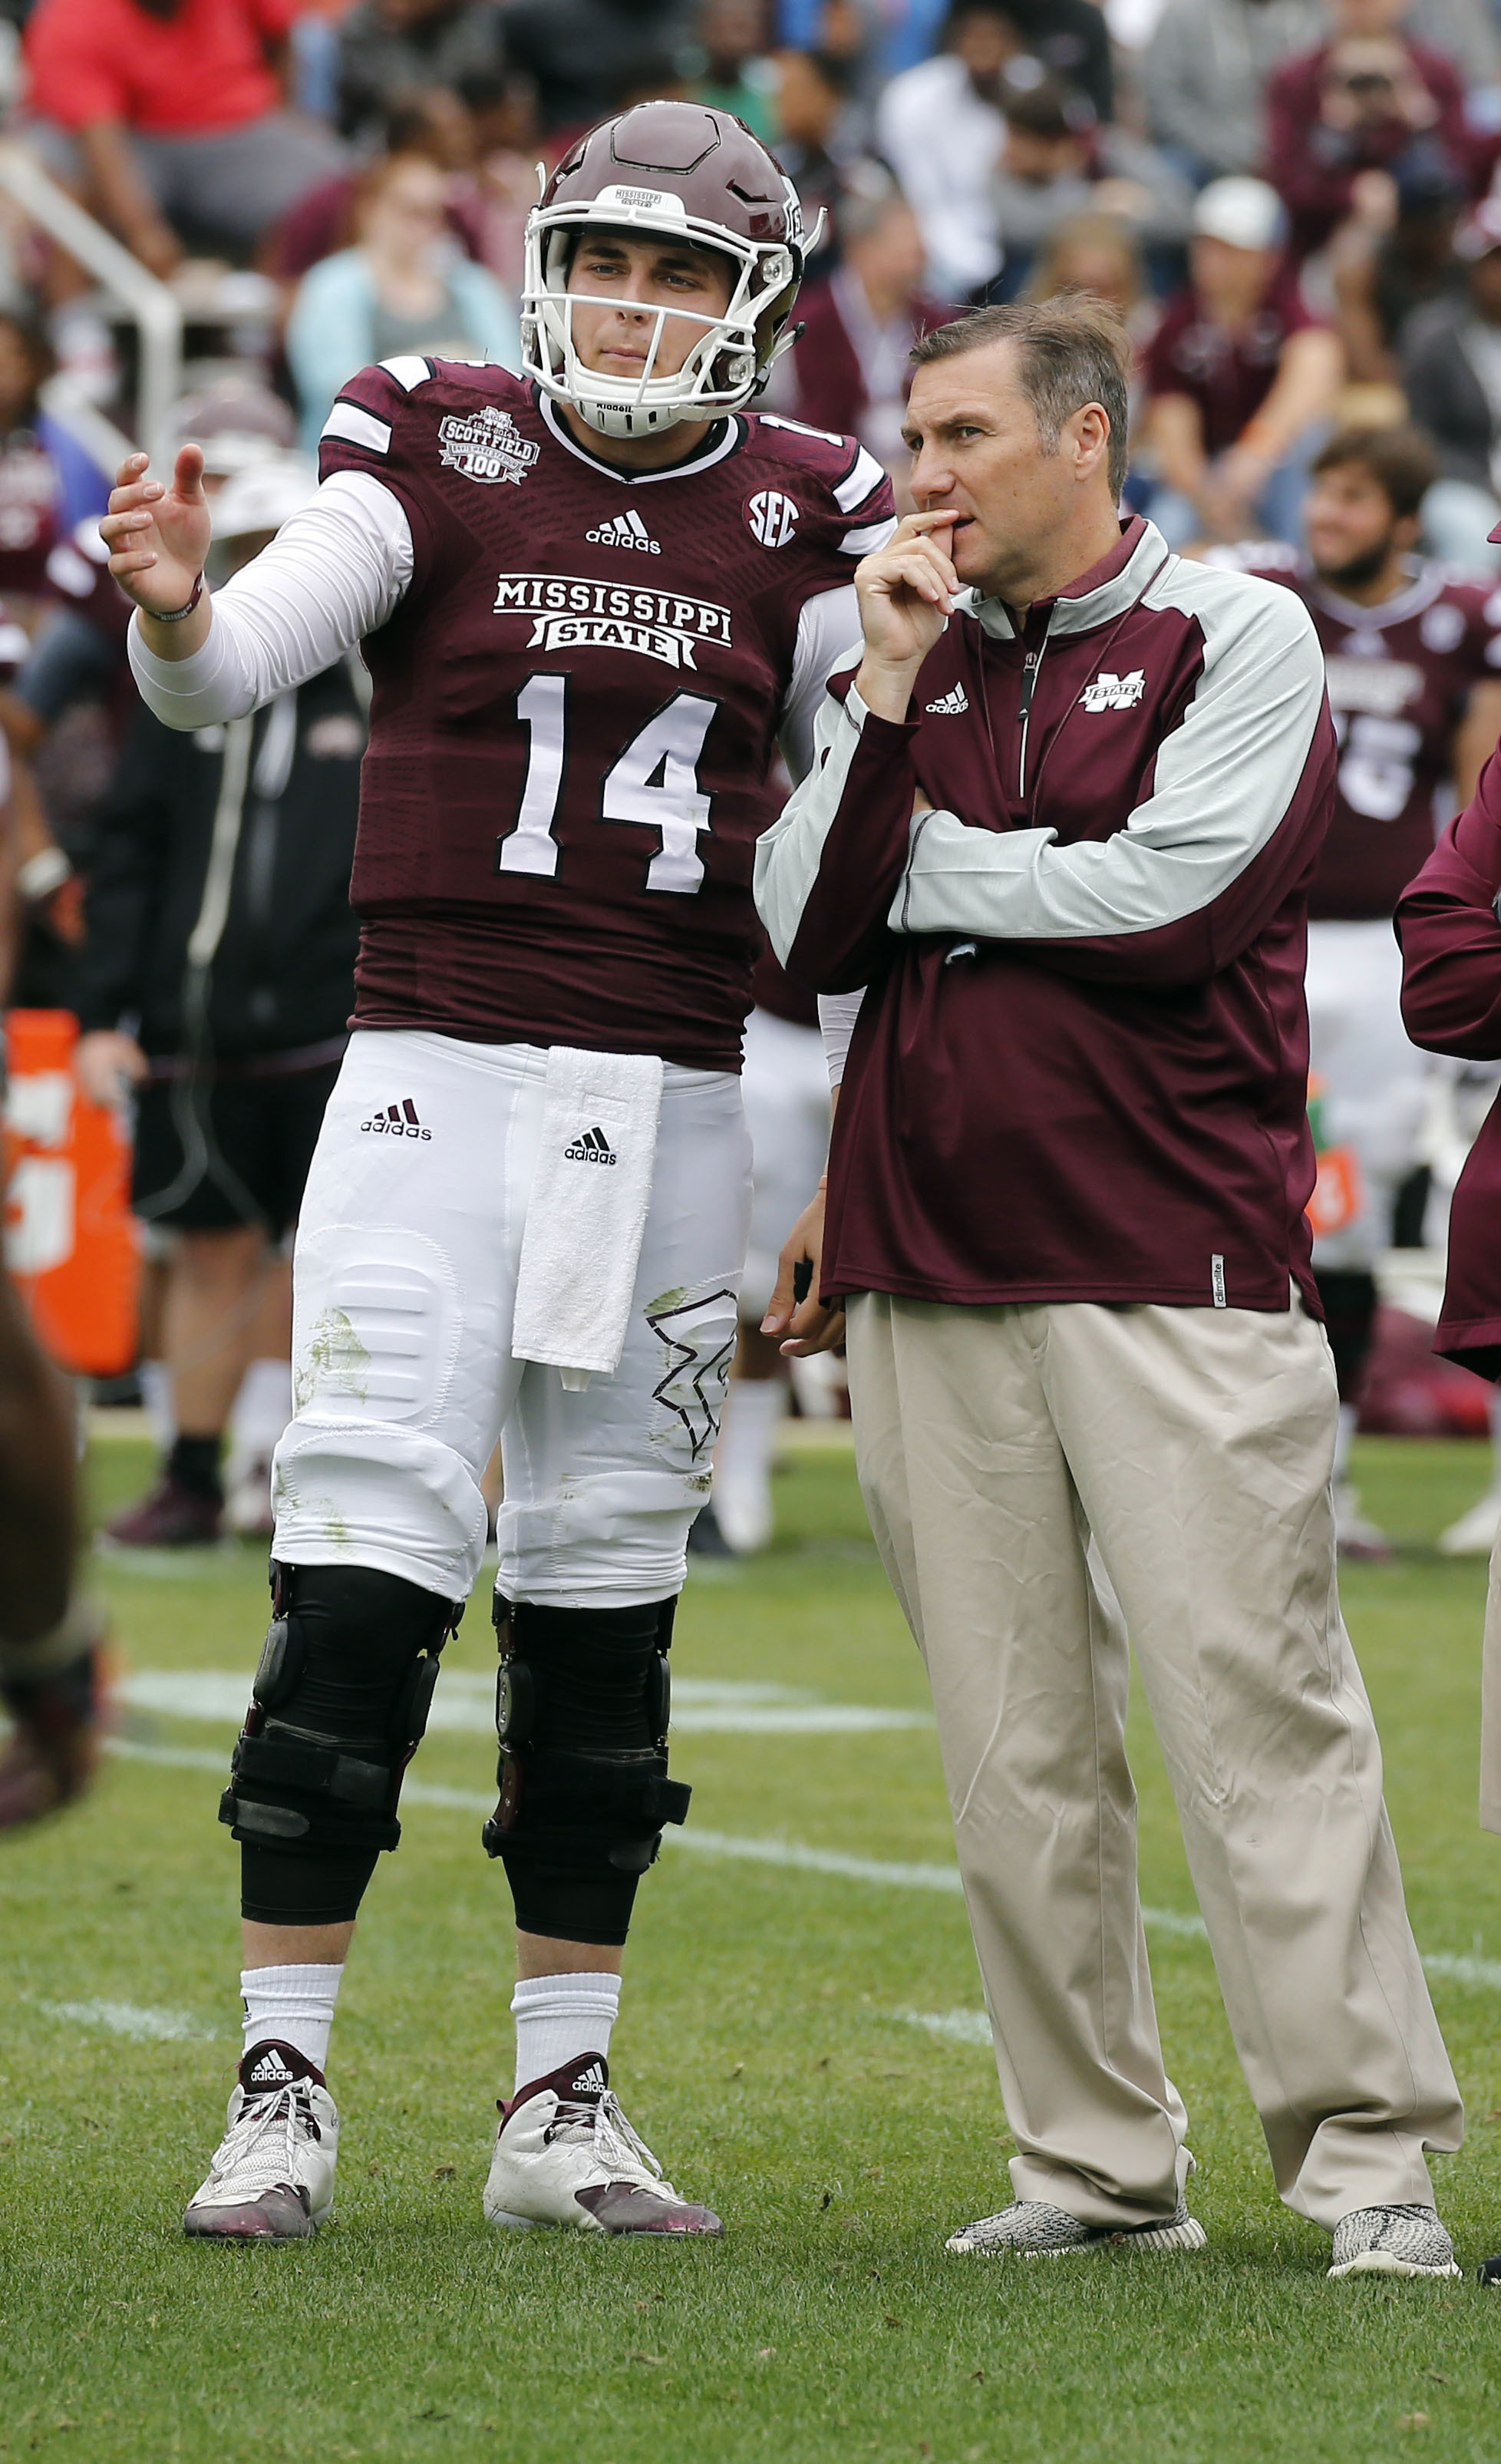 Mississippi State Maroon squad quarterback Nick Tiano (14) confers with coach Dan Mullen during the second half of a spring NCAA college football game, Saturday, April 16, 2015, in Starkville, Miss. Maroon won 34-21. (AP Photo/Rogelio V. Solis)